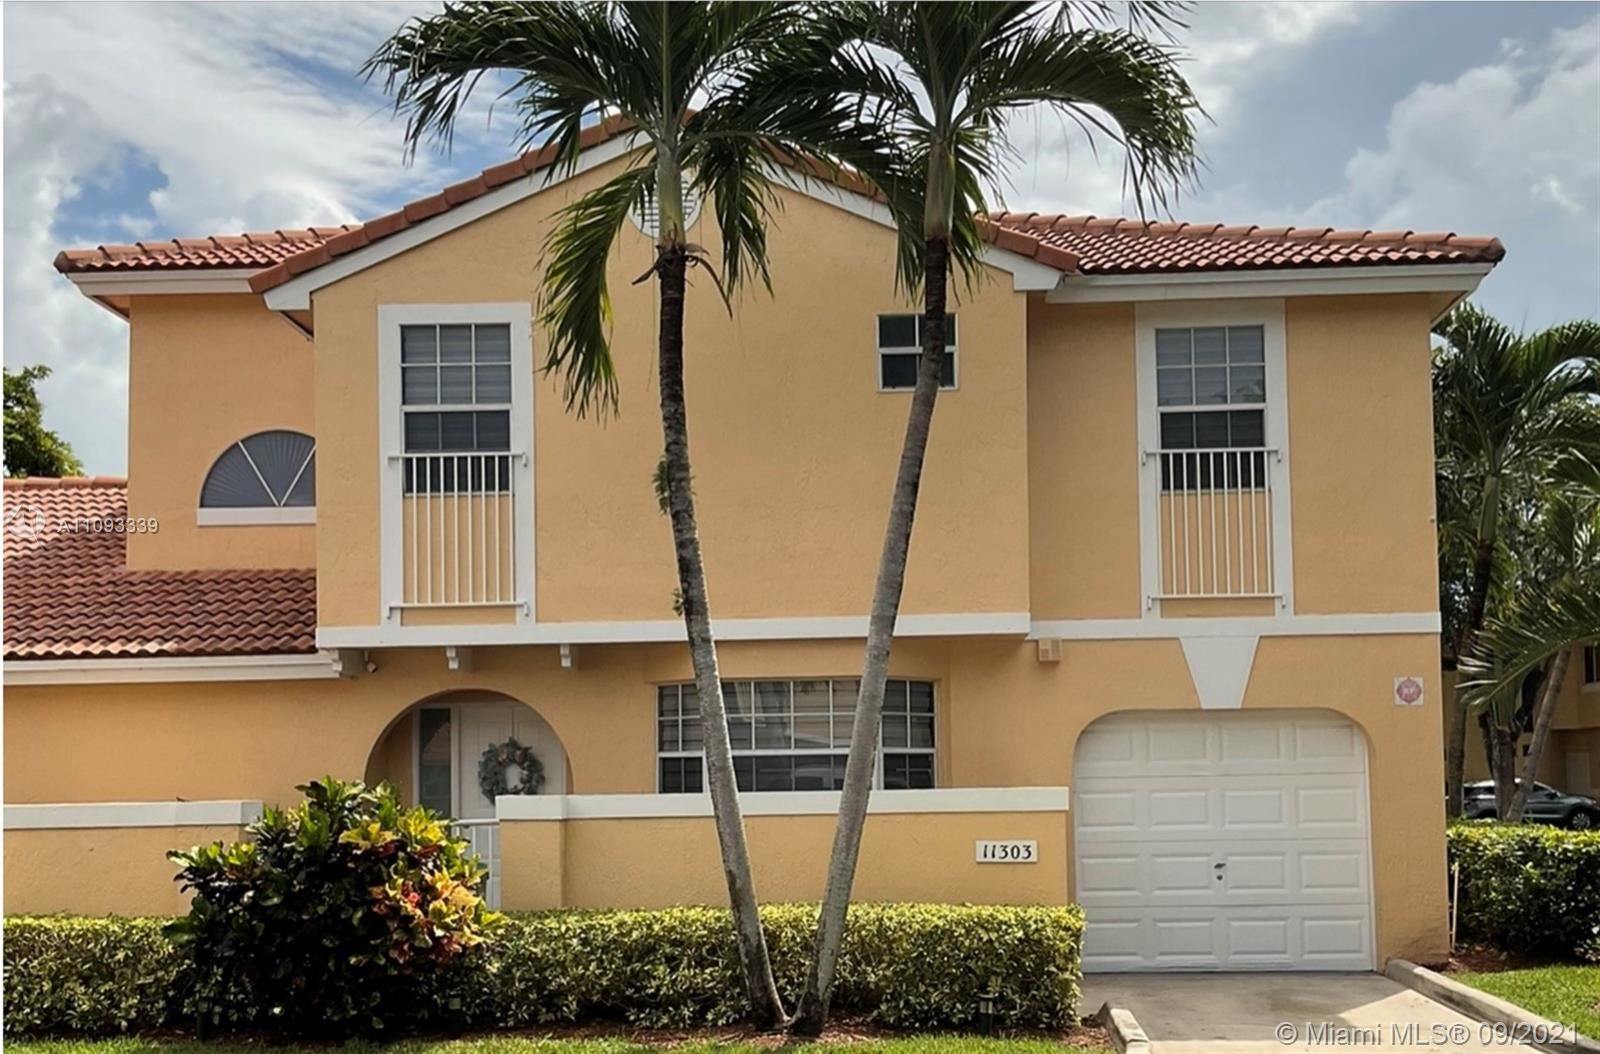 11303 Lakeview Dr #8-M, Coral Springs, FL 33071 - #: A11093339